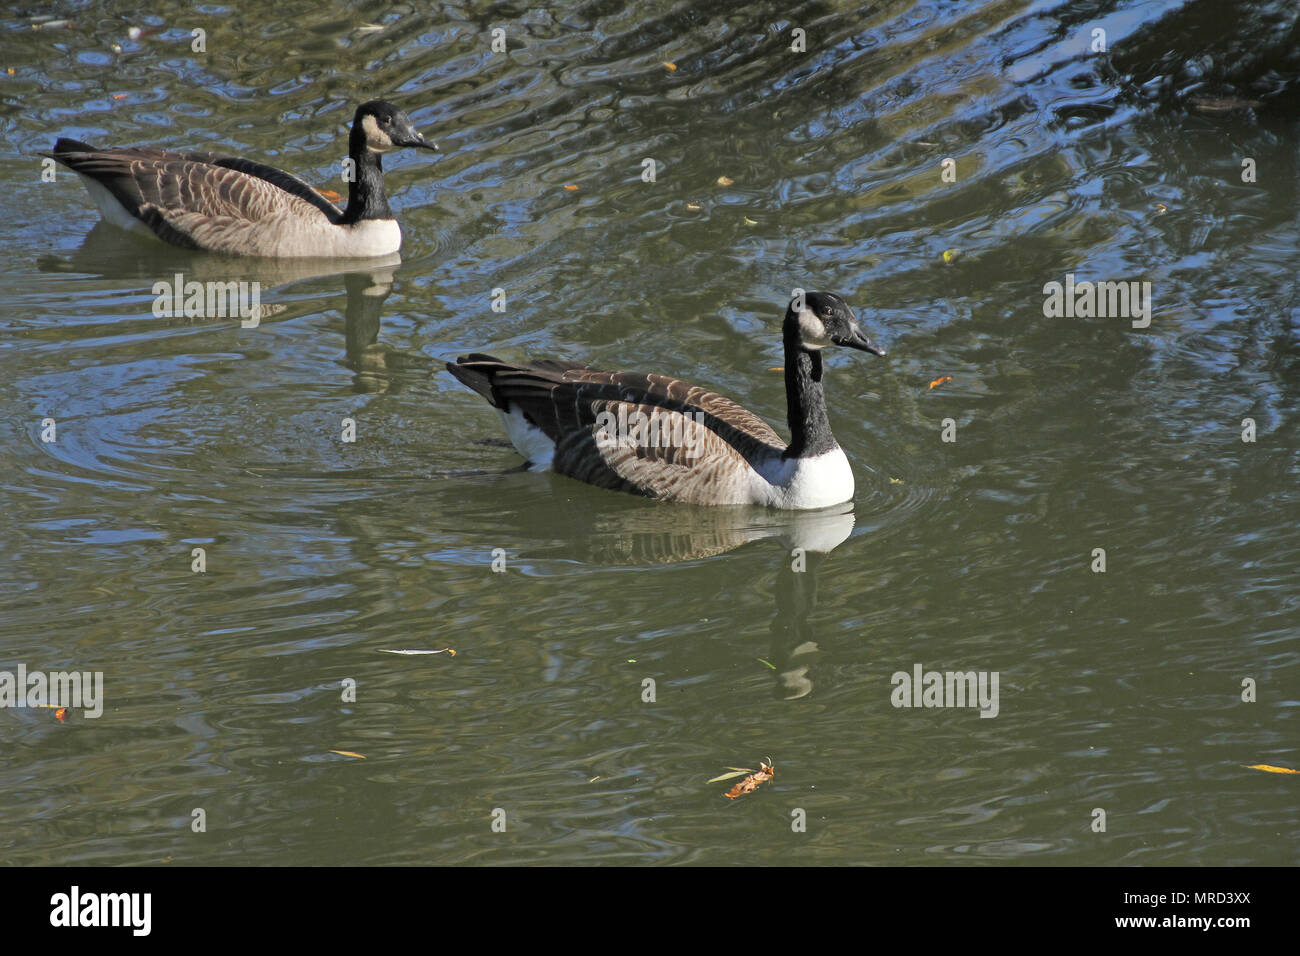 Canada goose or geese Latin brenta canadensis family anatidae swimming in the River Thames in the University Parks in Oxford UK in October - Stock Image